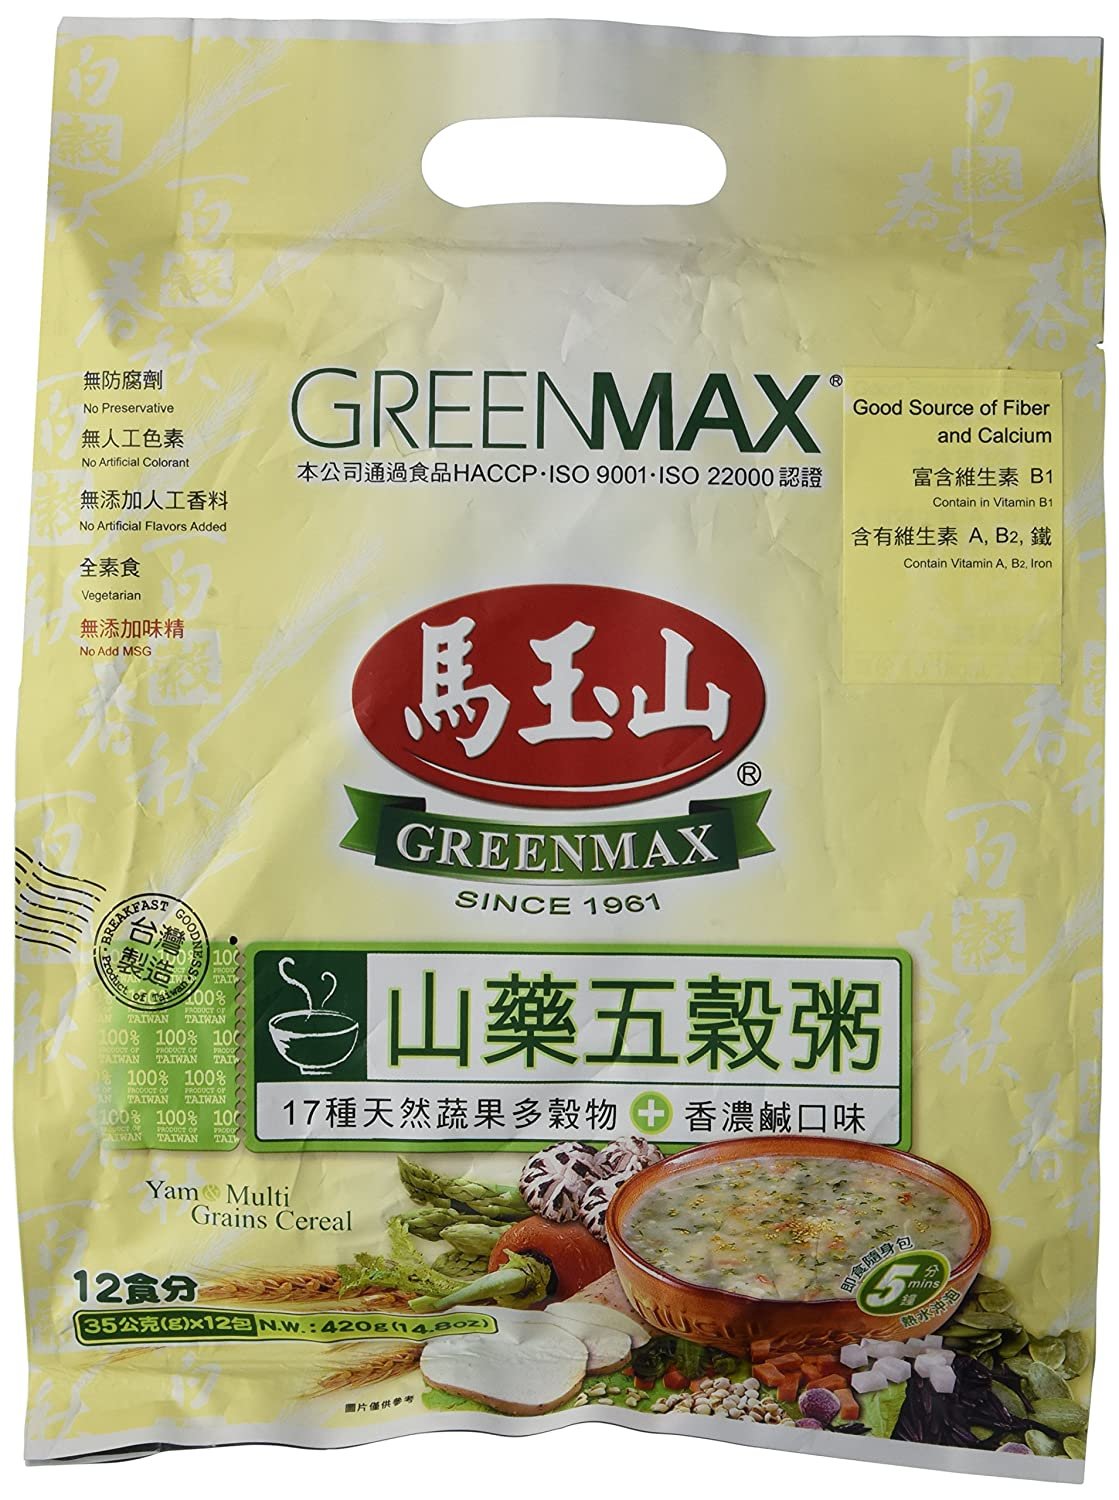 Max 56% OFF Greenmax - Yam Cereal Multi 67% OFF of fixed price Grains